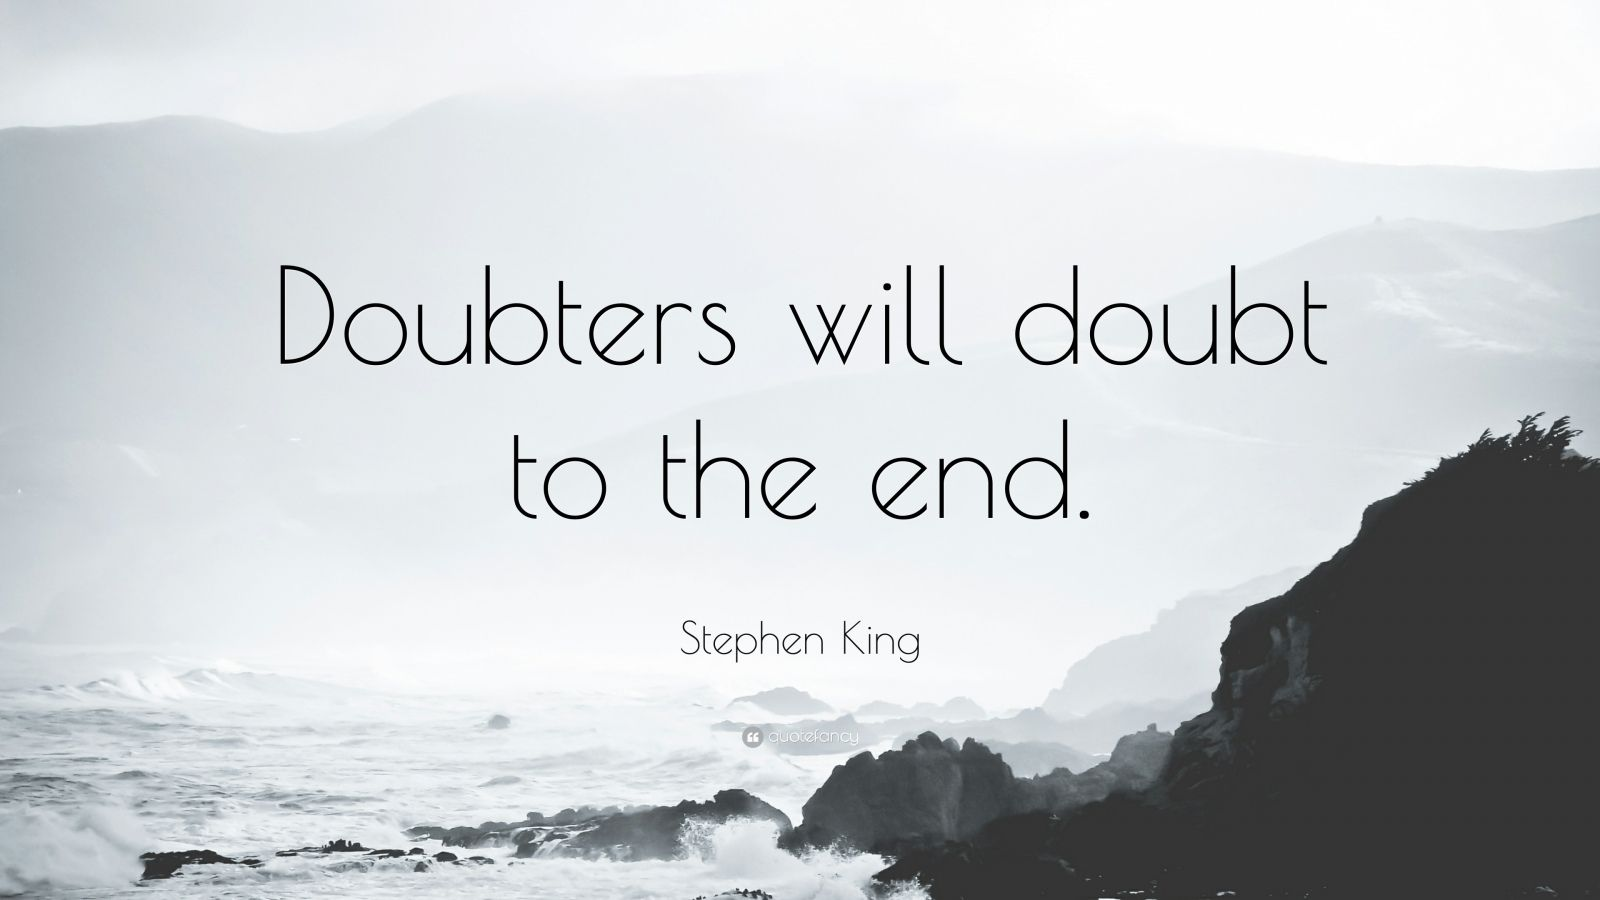 """Stephen King Quote: """"Doubters will doubt to the end."""""""